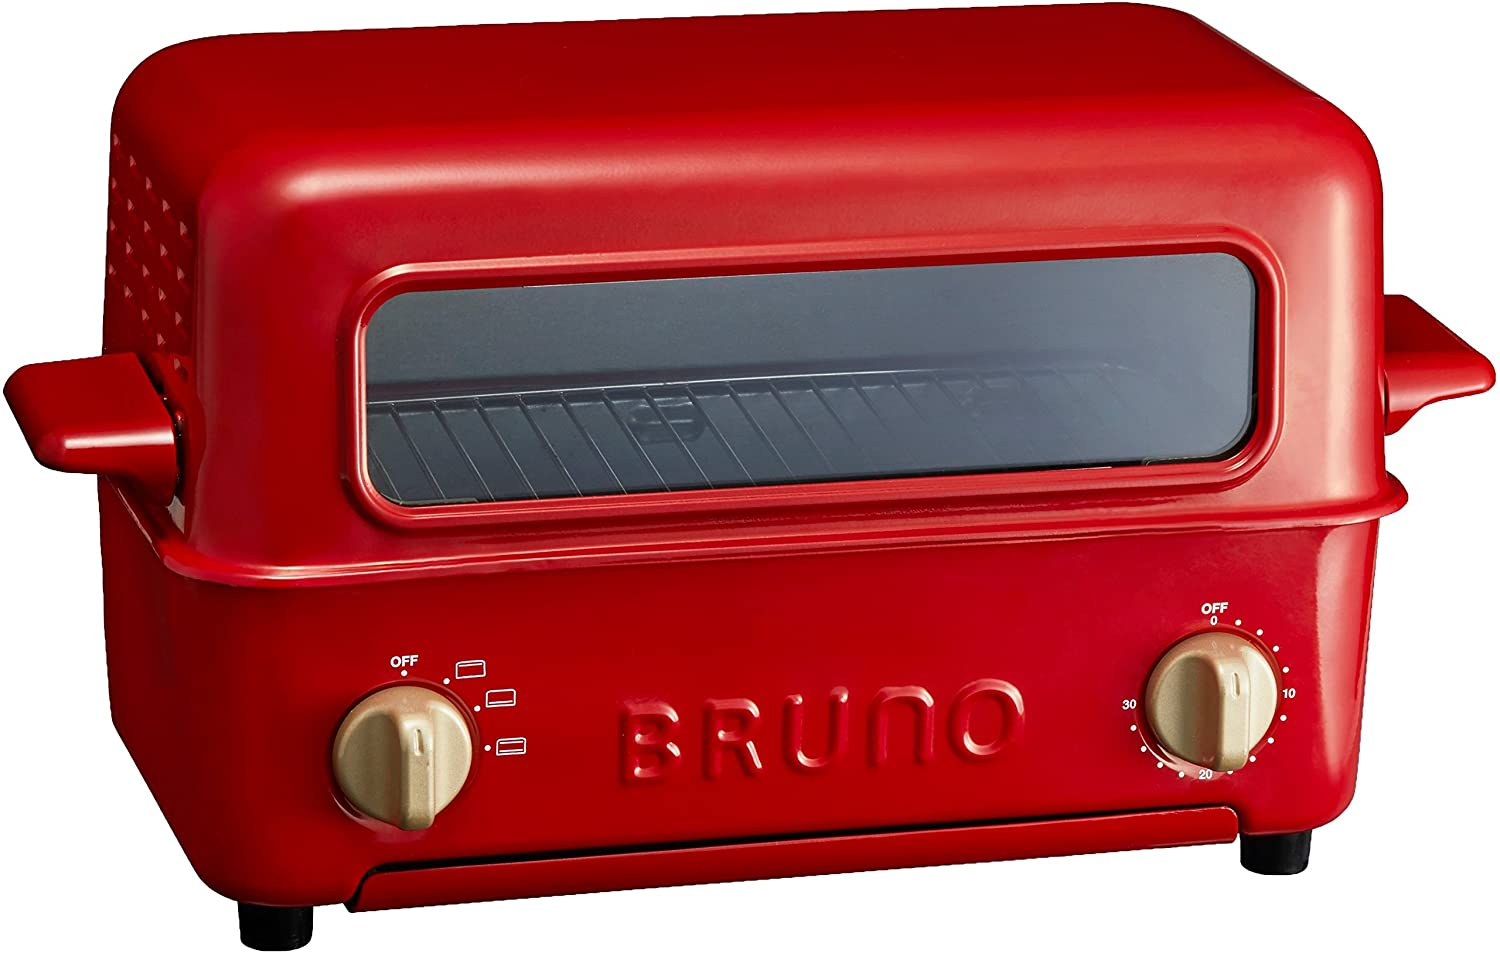 BRUNO Toaster Grill BOE033-RD (Red)【Japan Domestic genuine products】